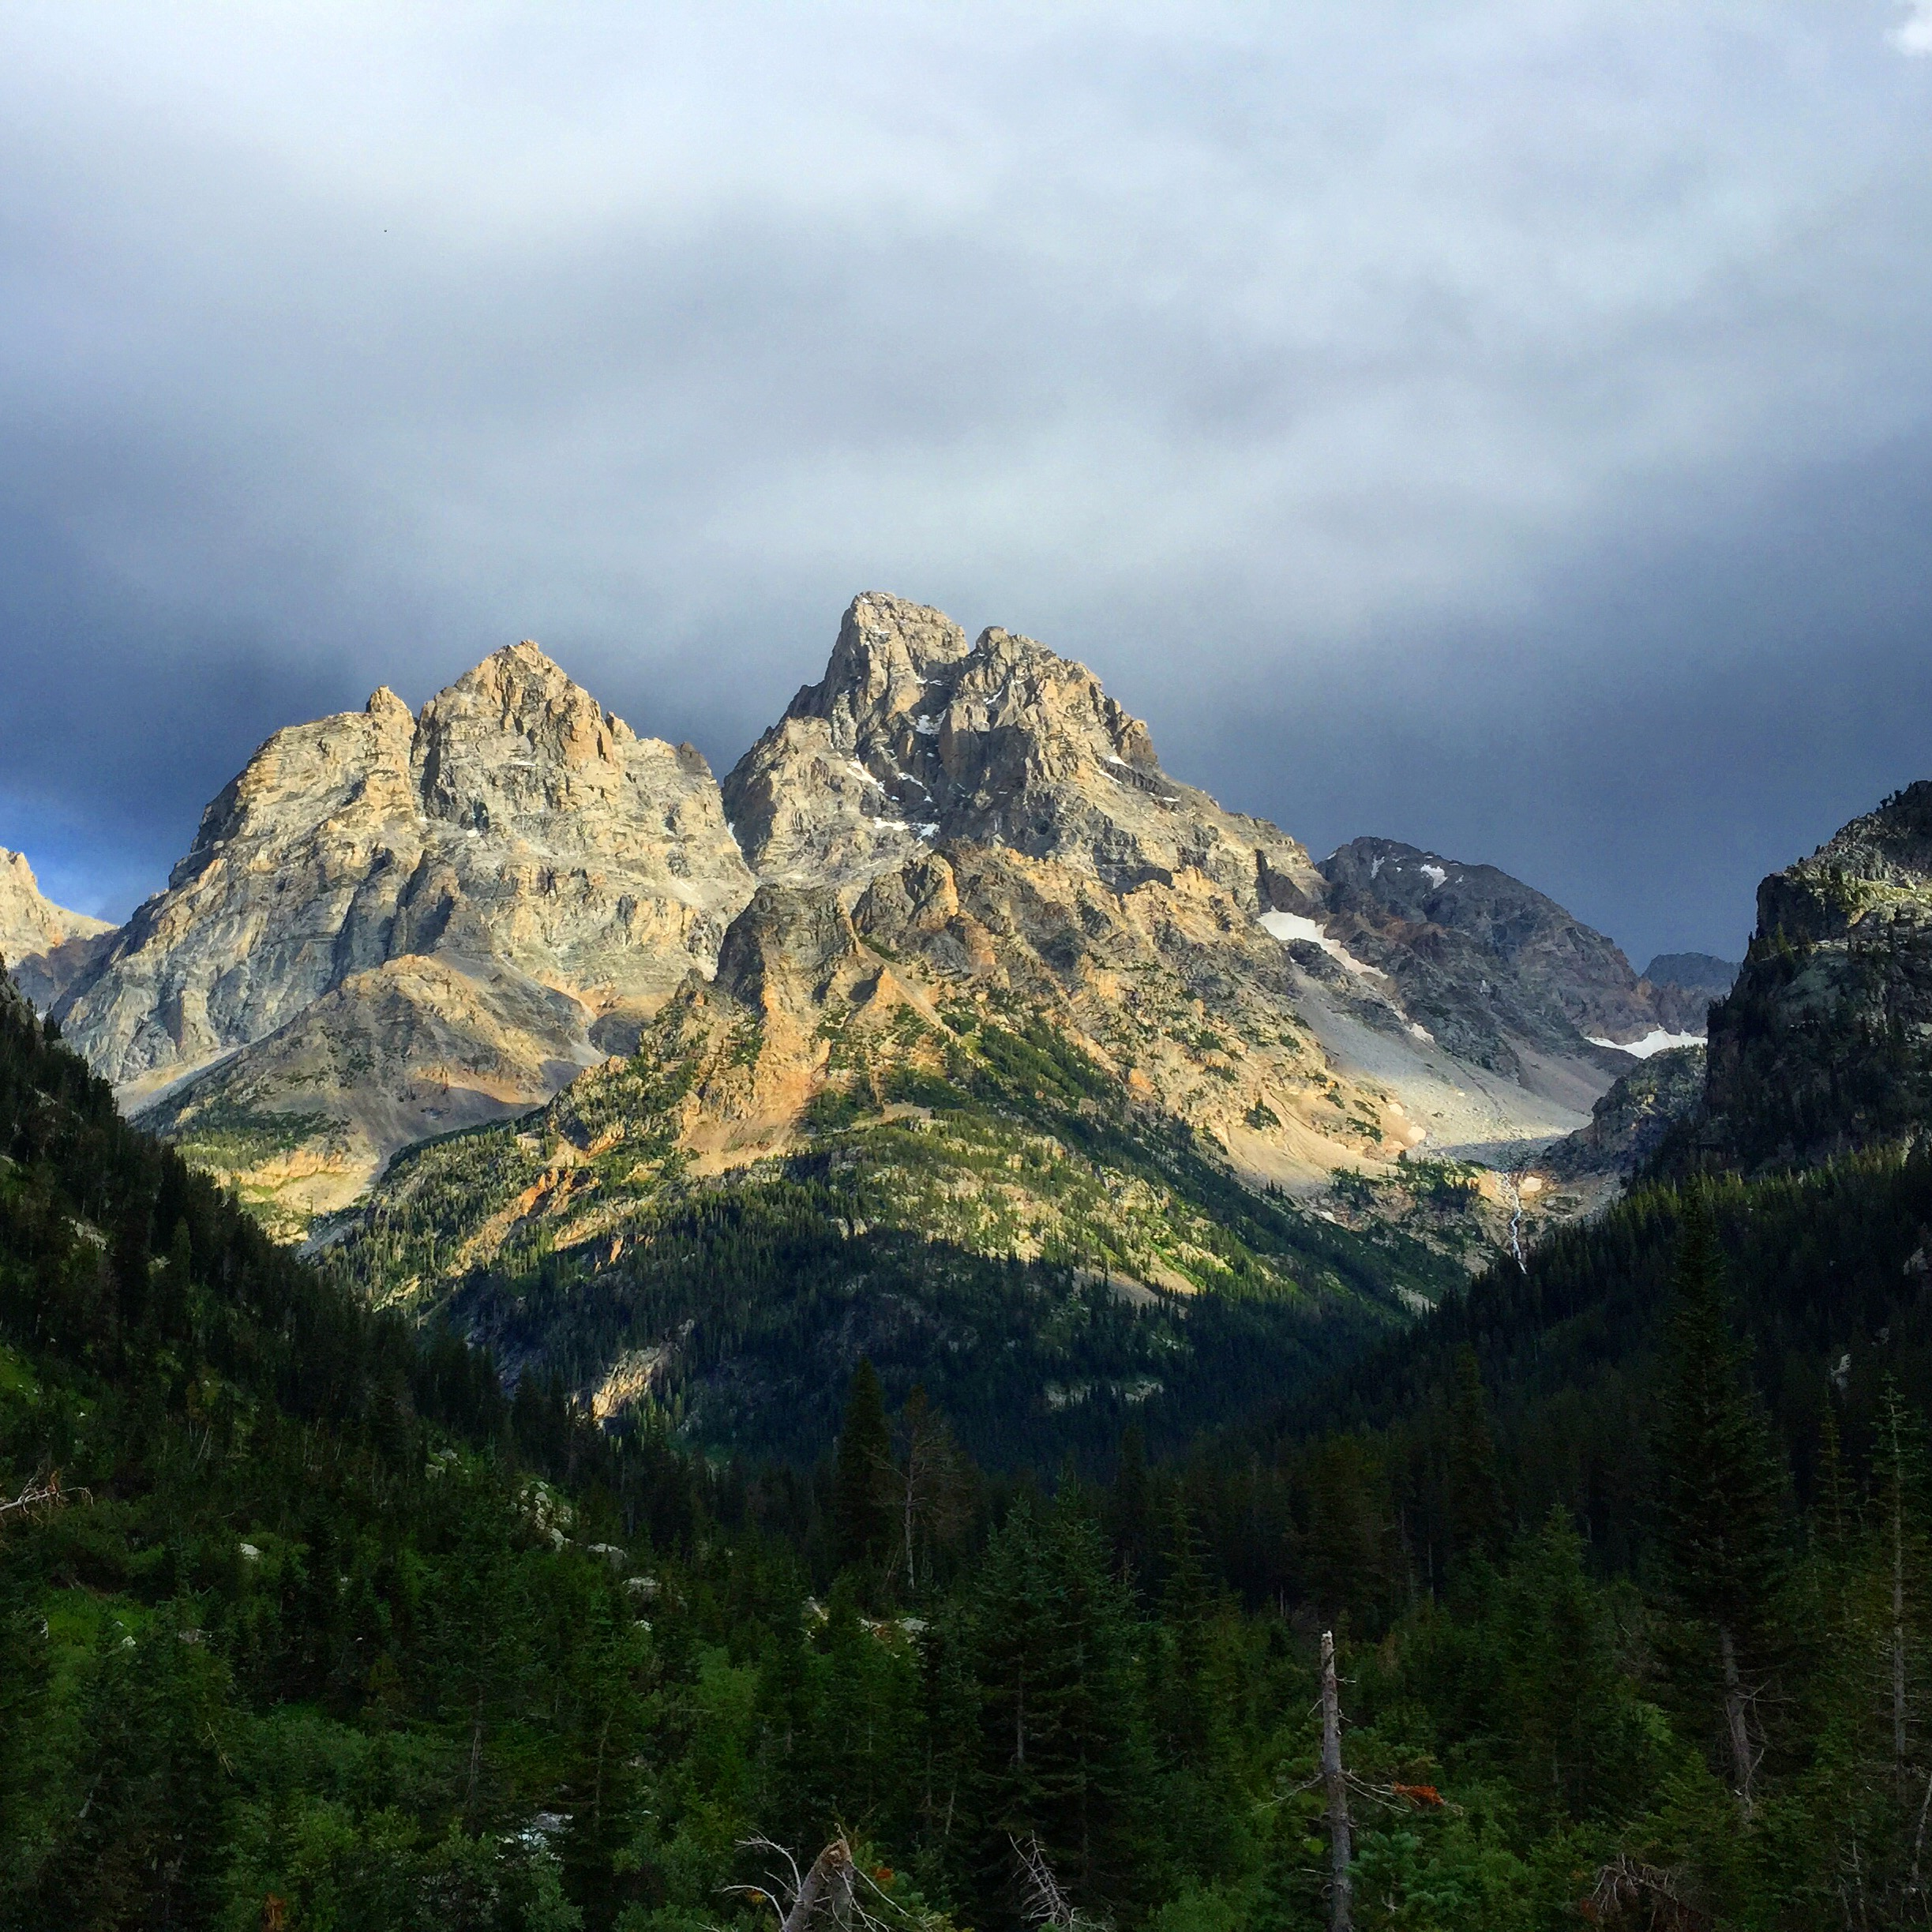 The view from my campsite in North Fork looking at Grand Teton.